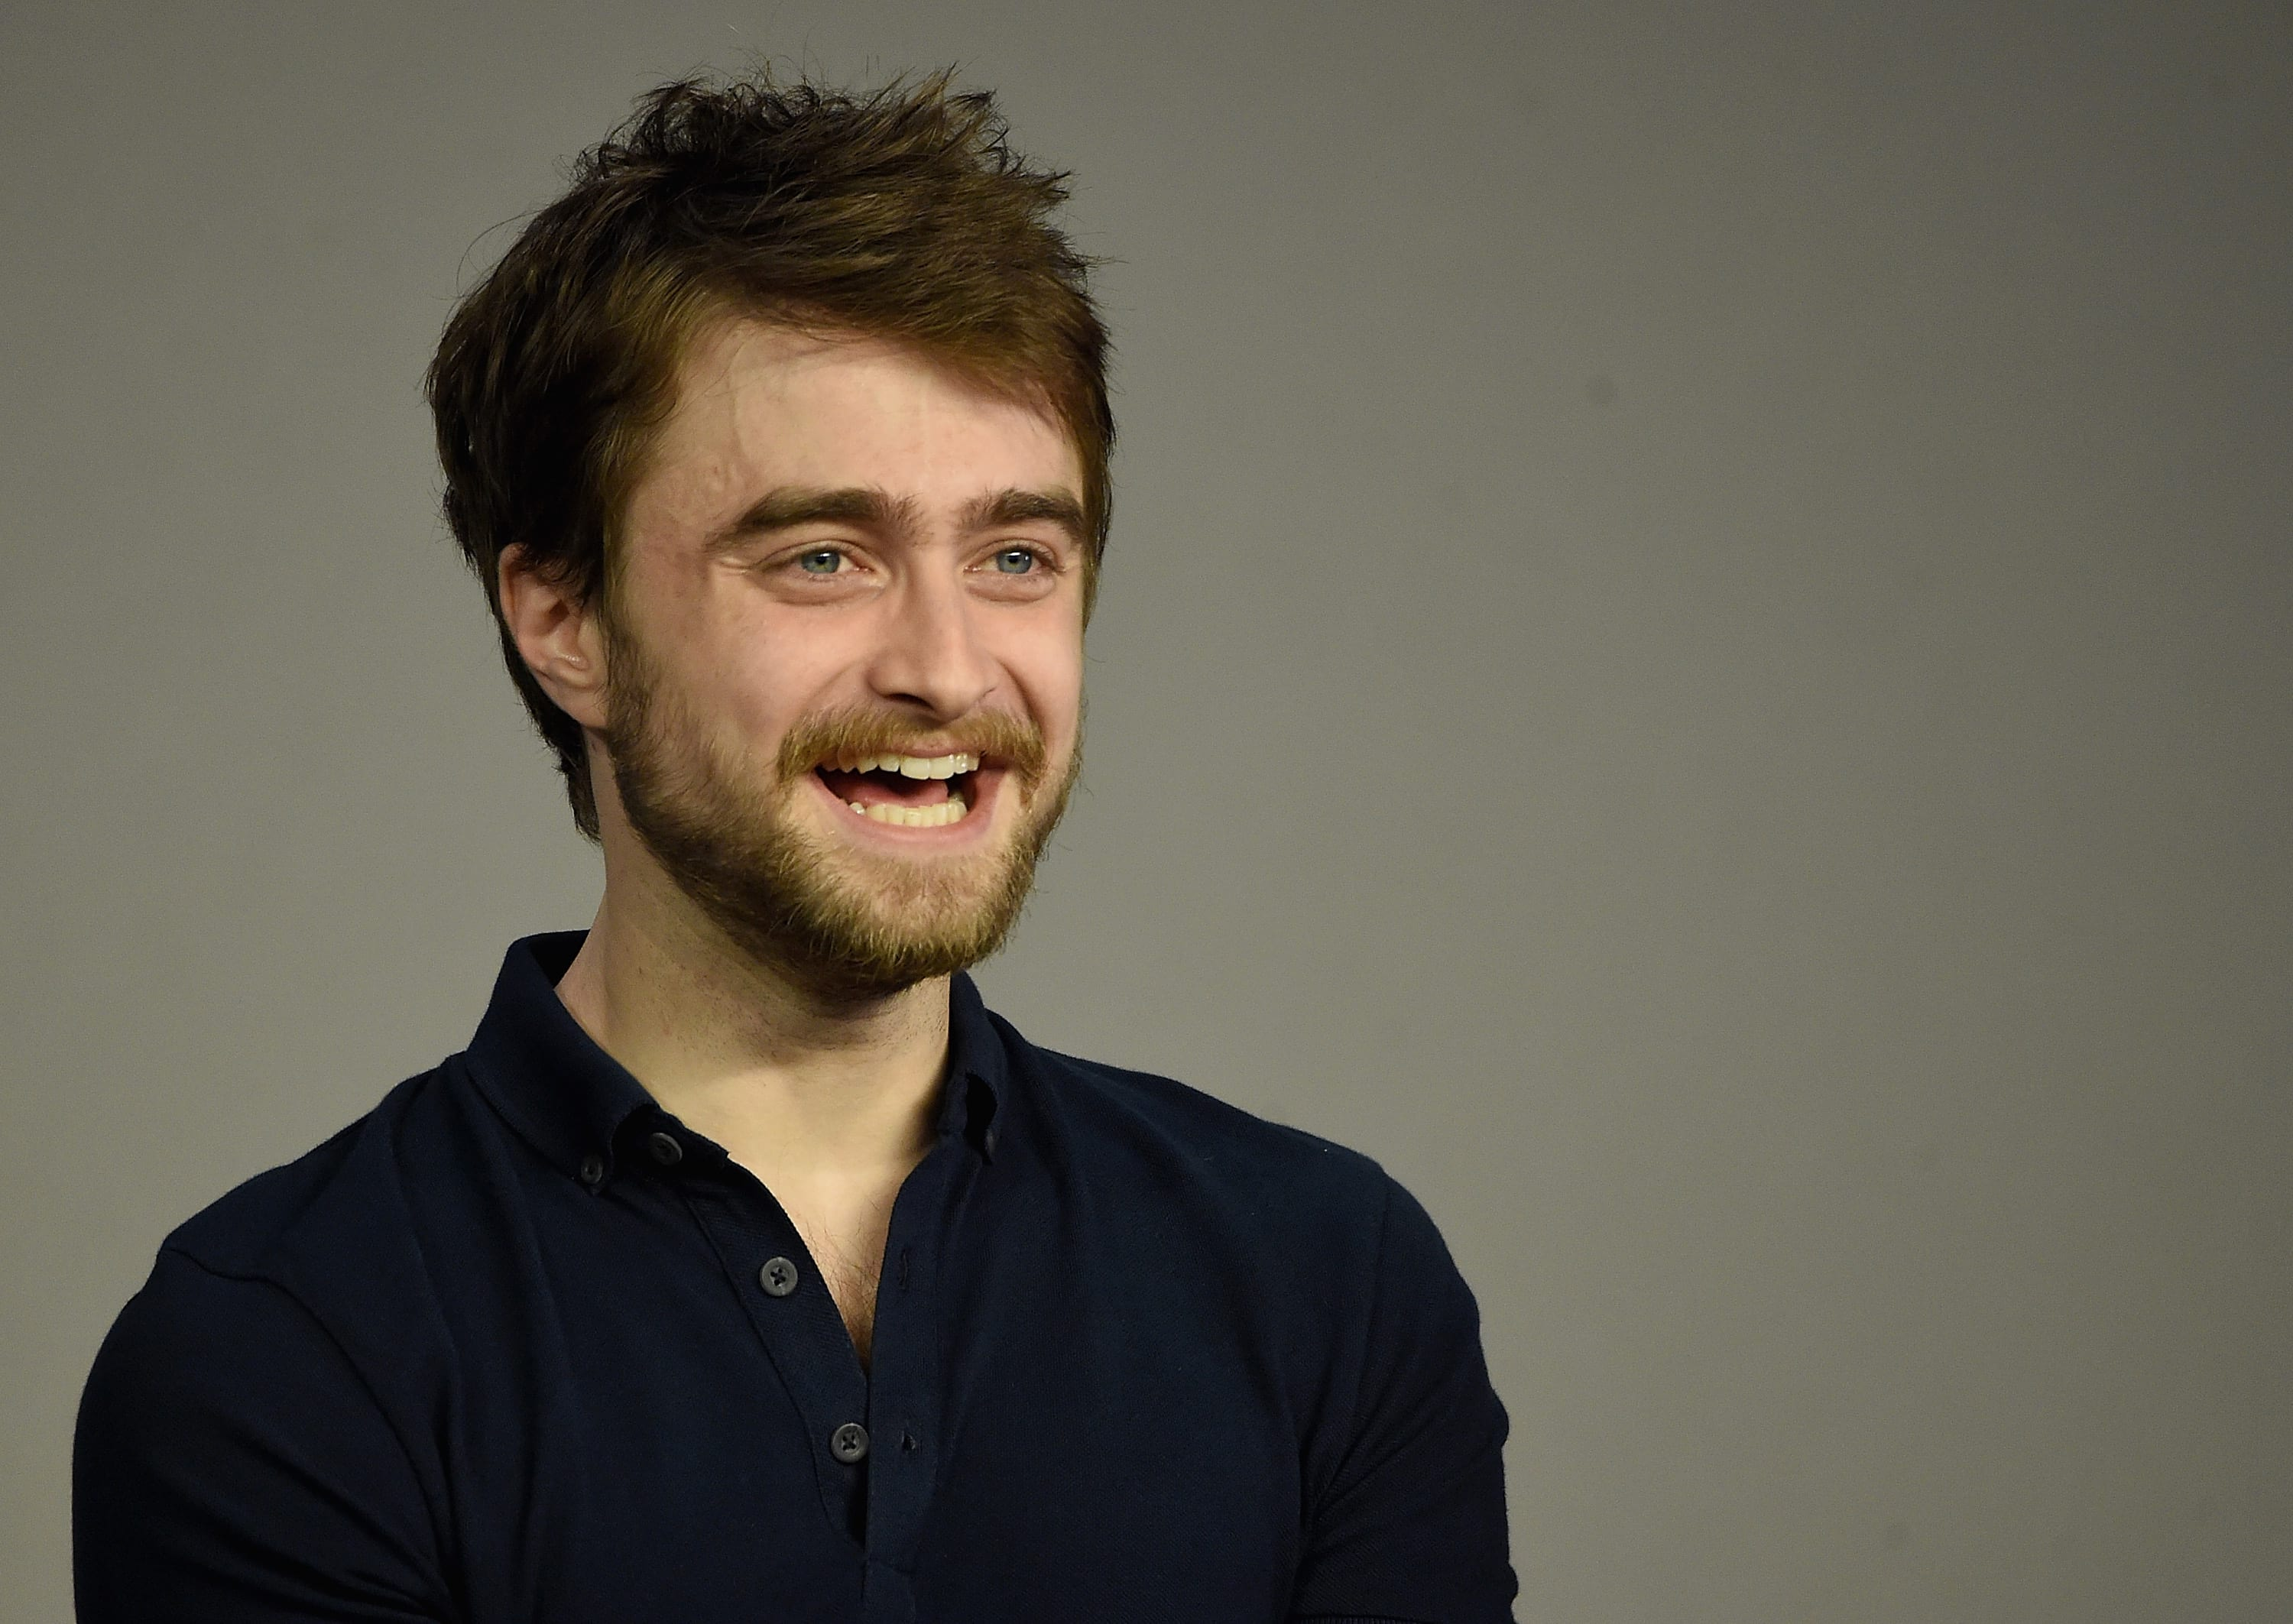 Daniel Radcliffe Reveals What Hes Been Doing With His Harry Potter Millions wsi imageoptim GettyImages 543378206